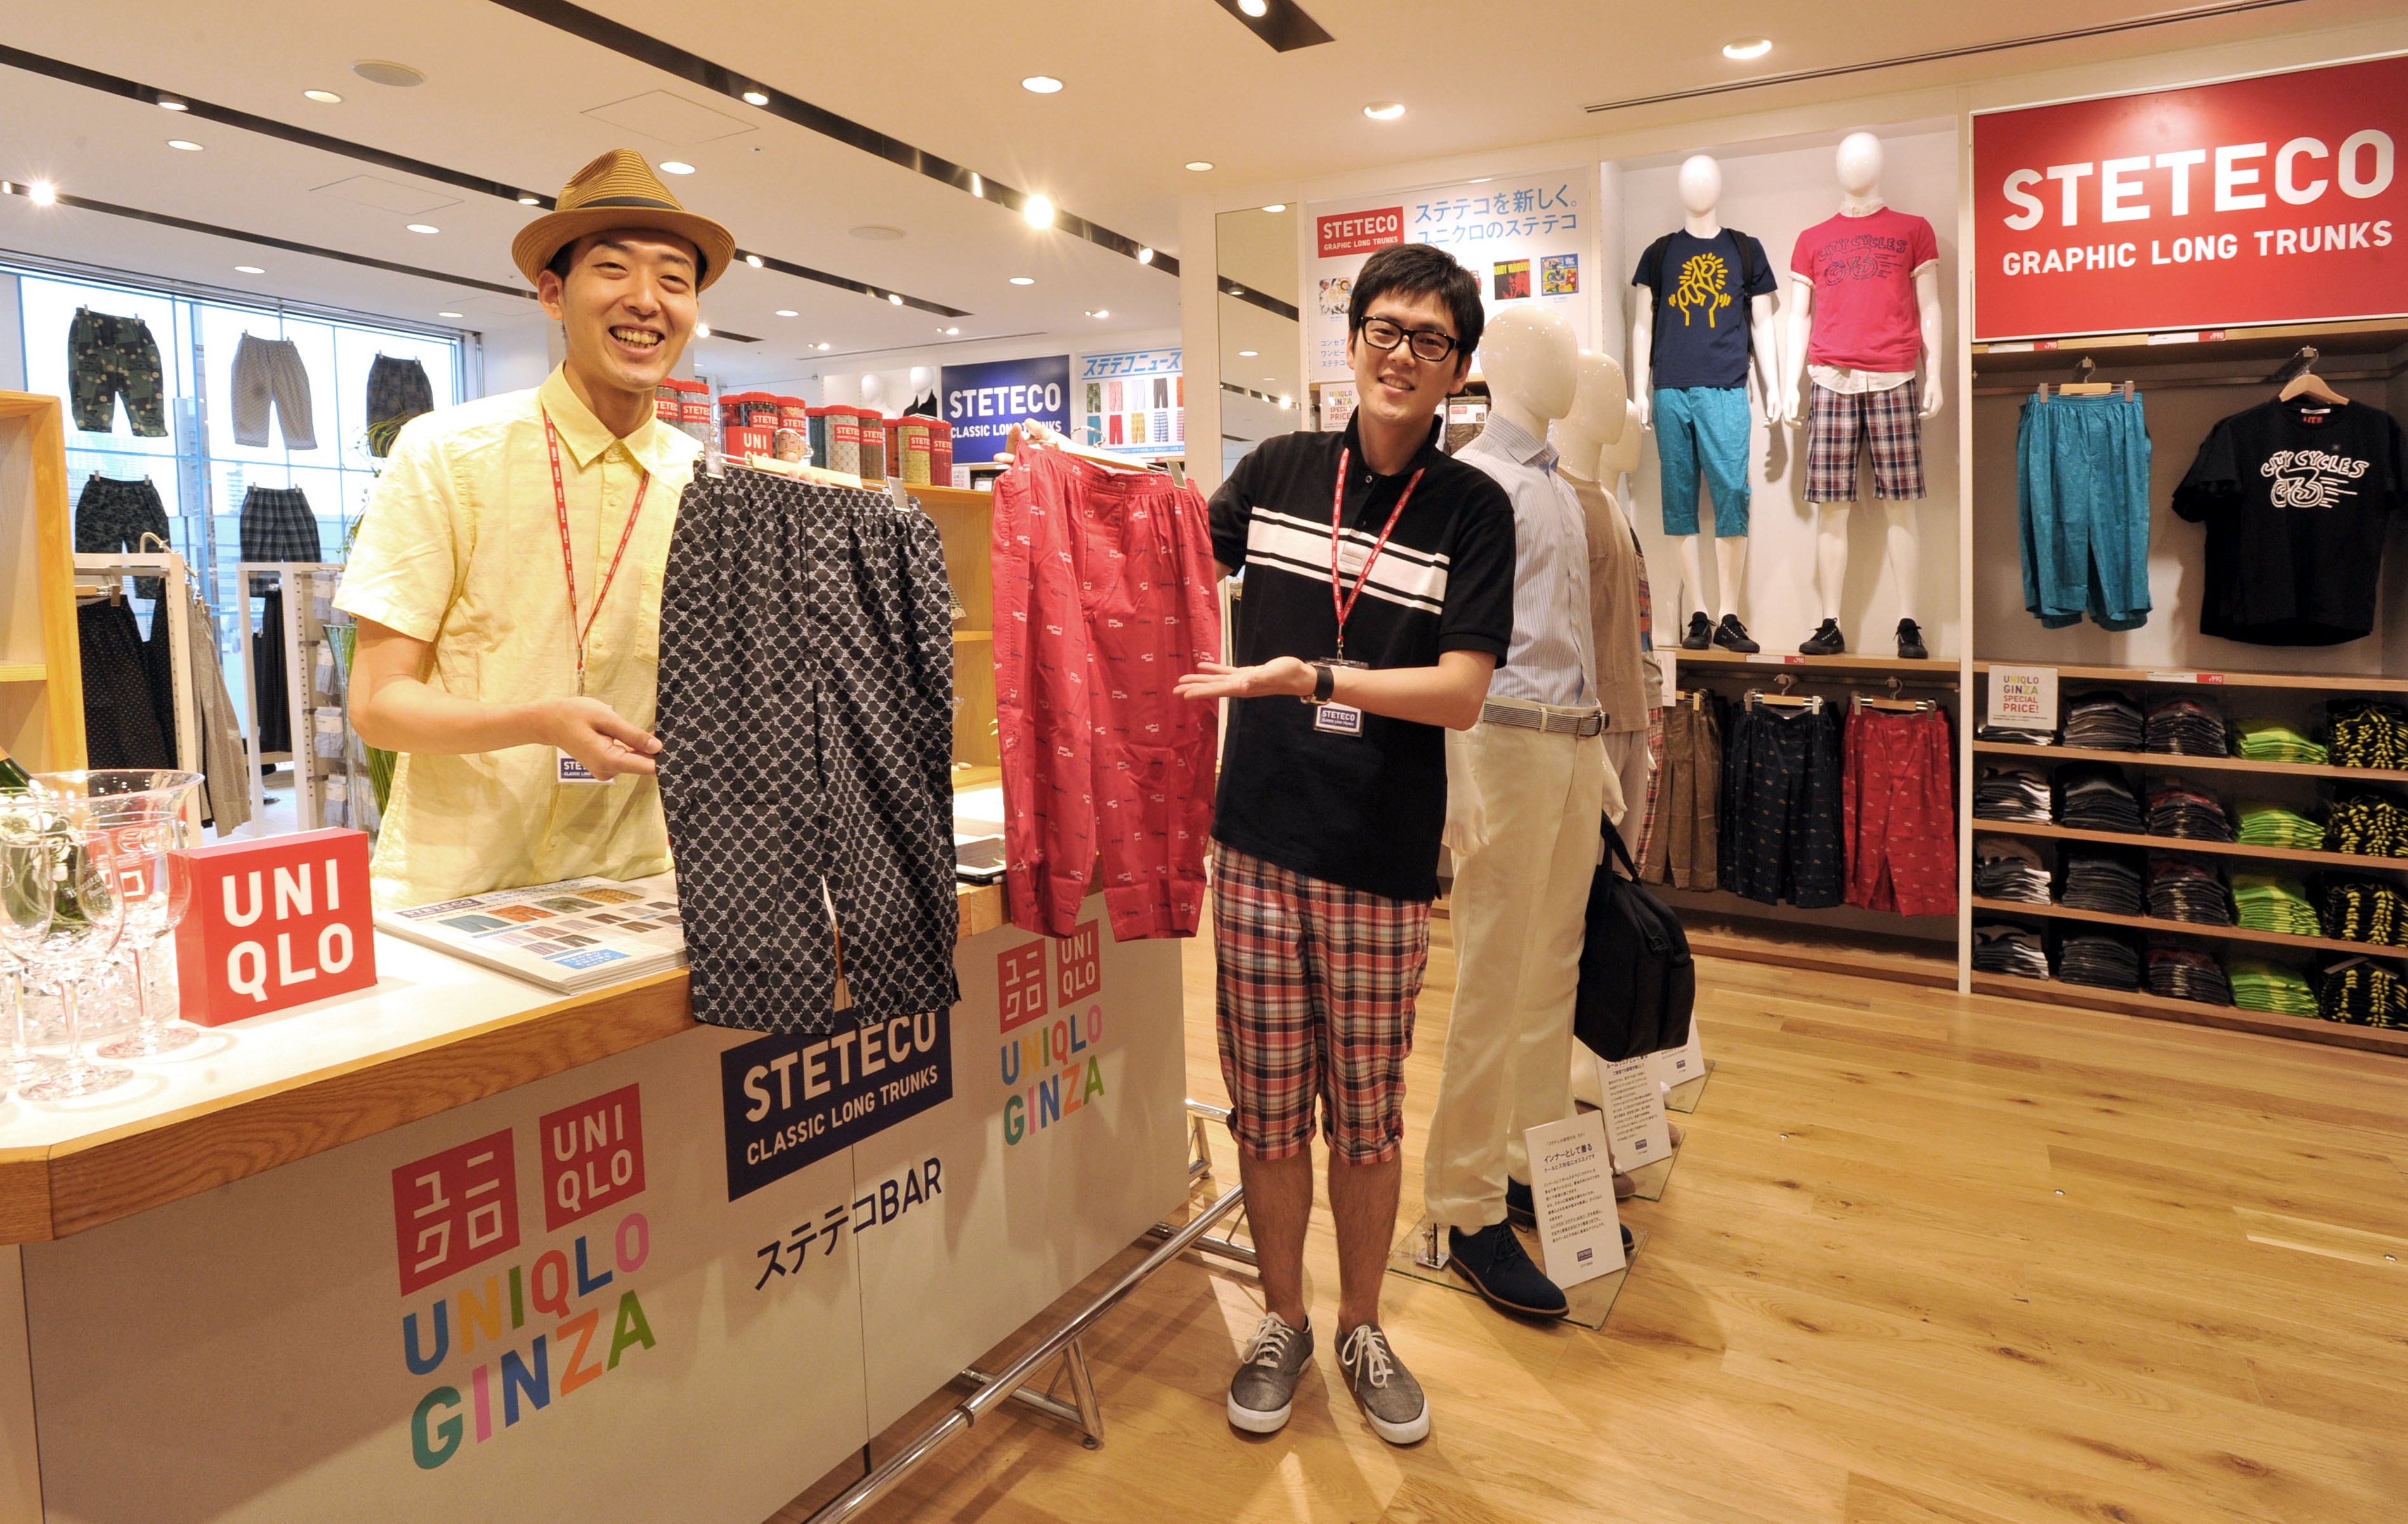 Breaking with convention: Uniqlo 'steteco bartenders' Sokichi Hotta (left) and Itaru Nakamaniwa show and wear brightly colored 'suteteko' underwear at the company's flagship store in Ginza, Tokyo, on Monday. | YOSHIAKI MIURA